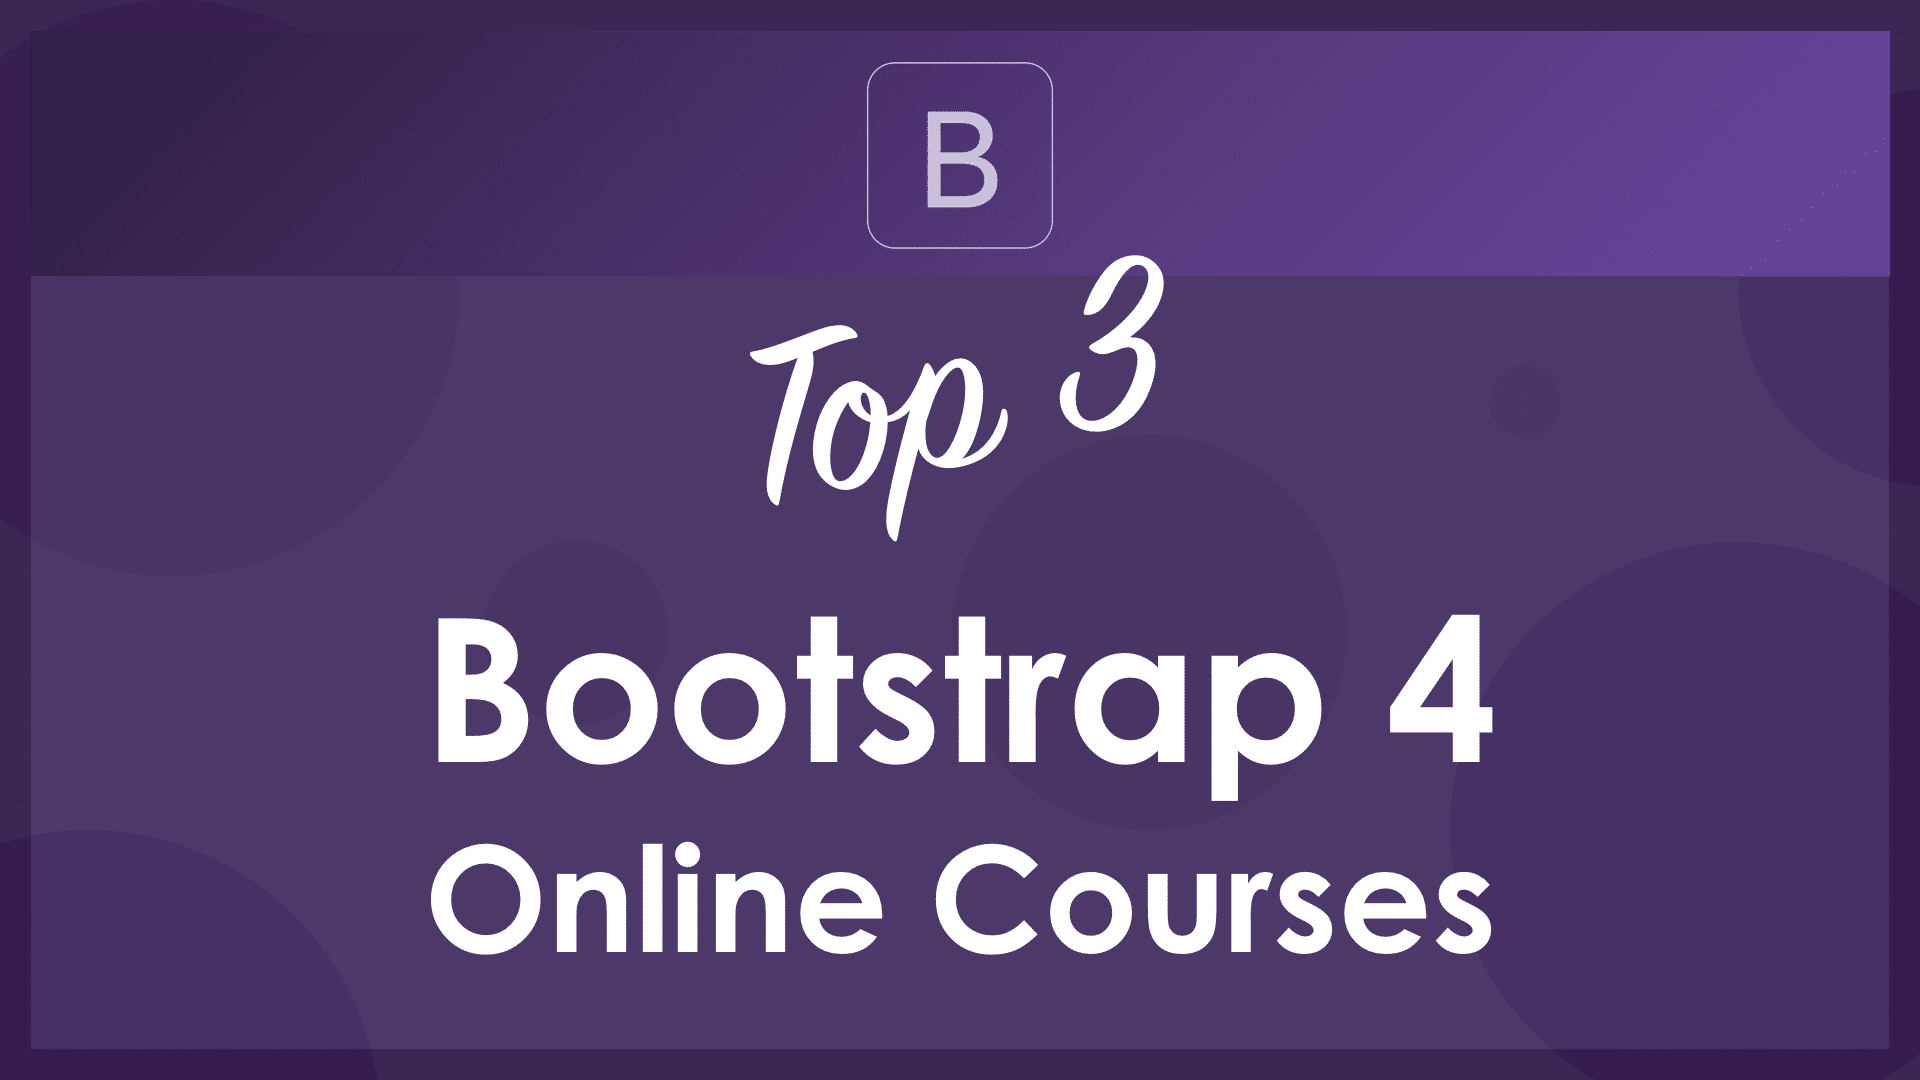 Top 3 Bootstrap 4 Online Courses